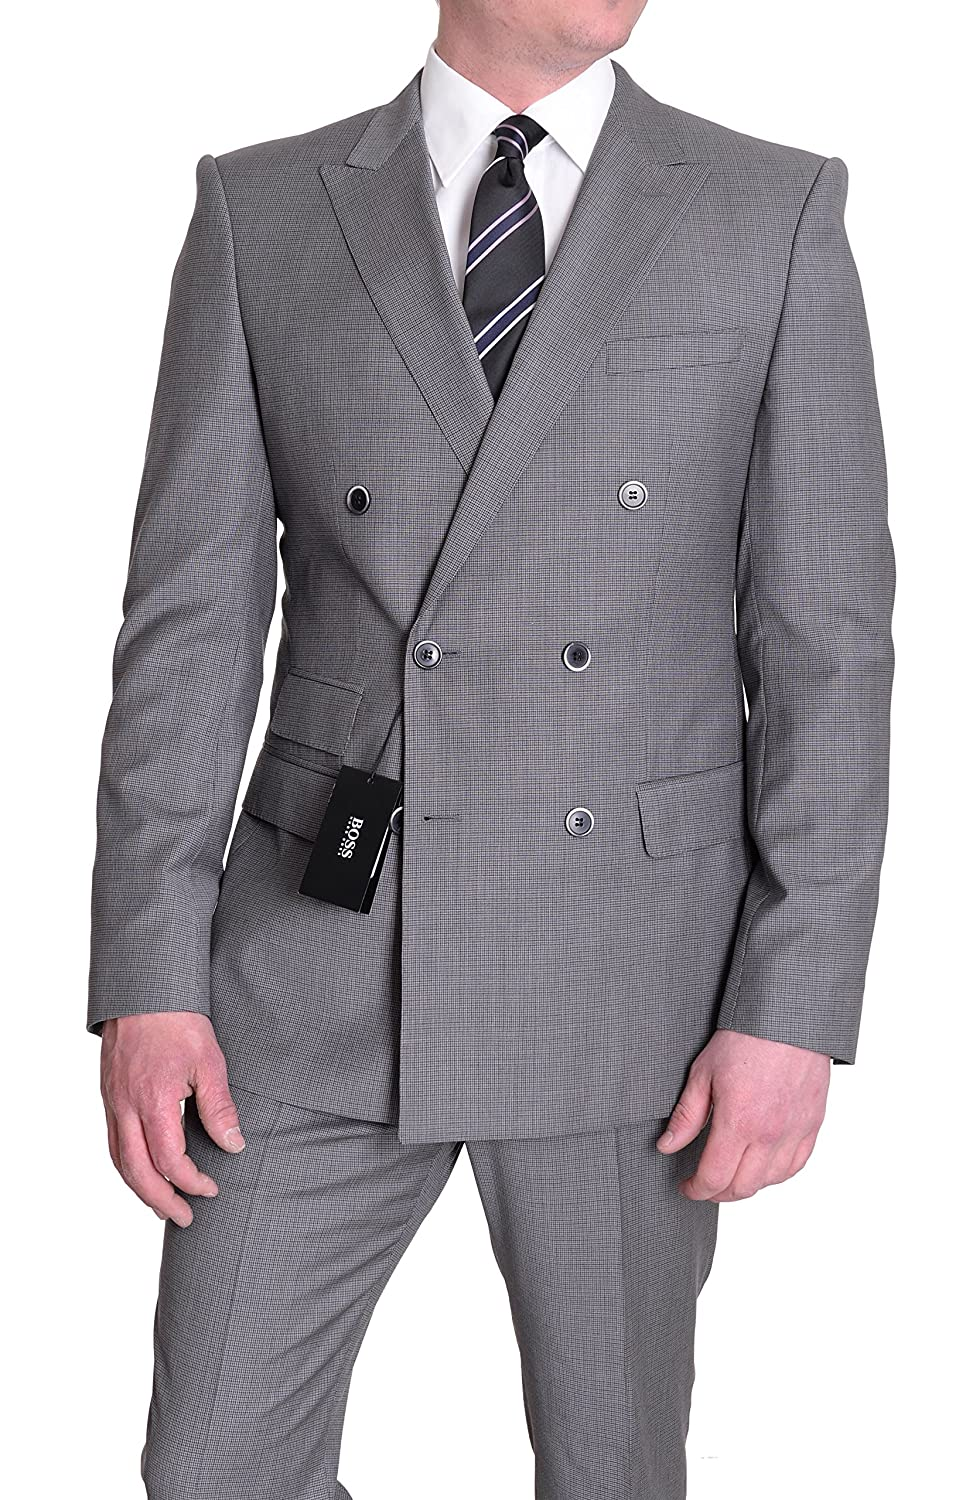 2665e8797 The Suit Depot Hugo Boss Darrington/Knight Extra Slim Fit 38R Gray Check  Double Breasted Super 100 Wool Suit at Amazon Men's Clothing store: